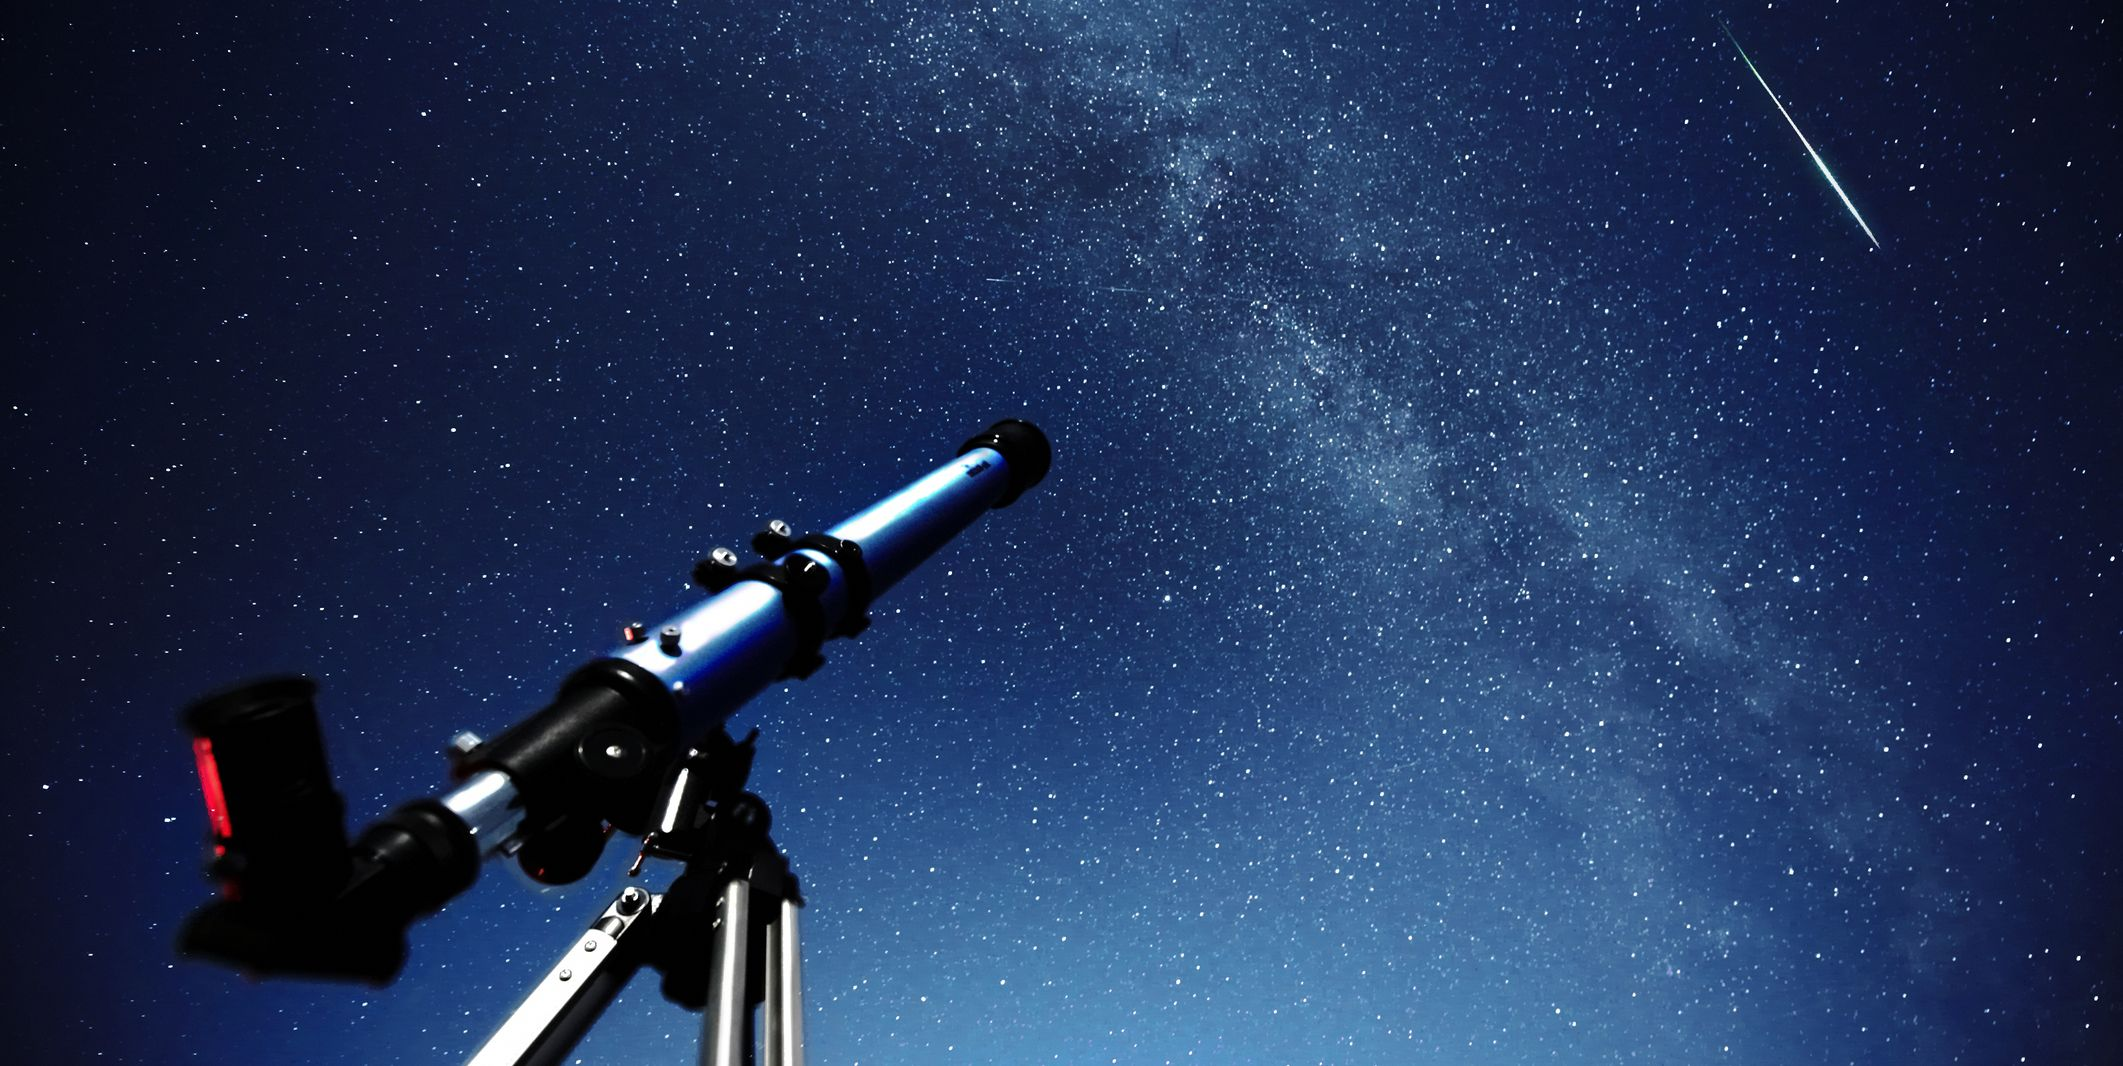 Telescope pointed at the Milky Way Galaxy